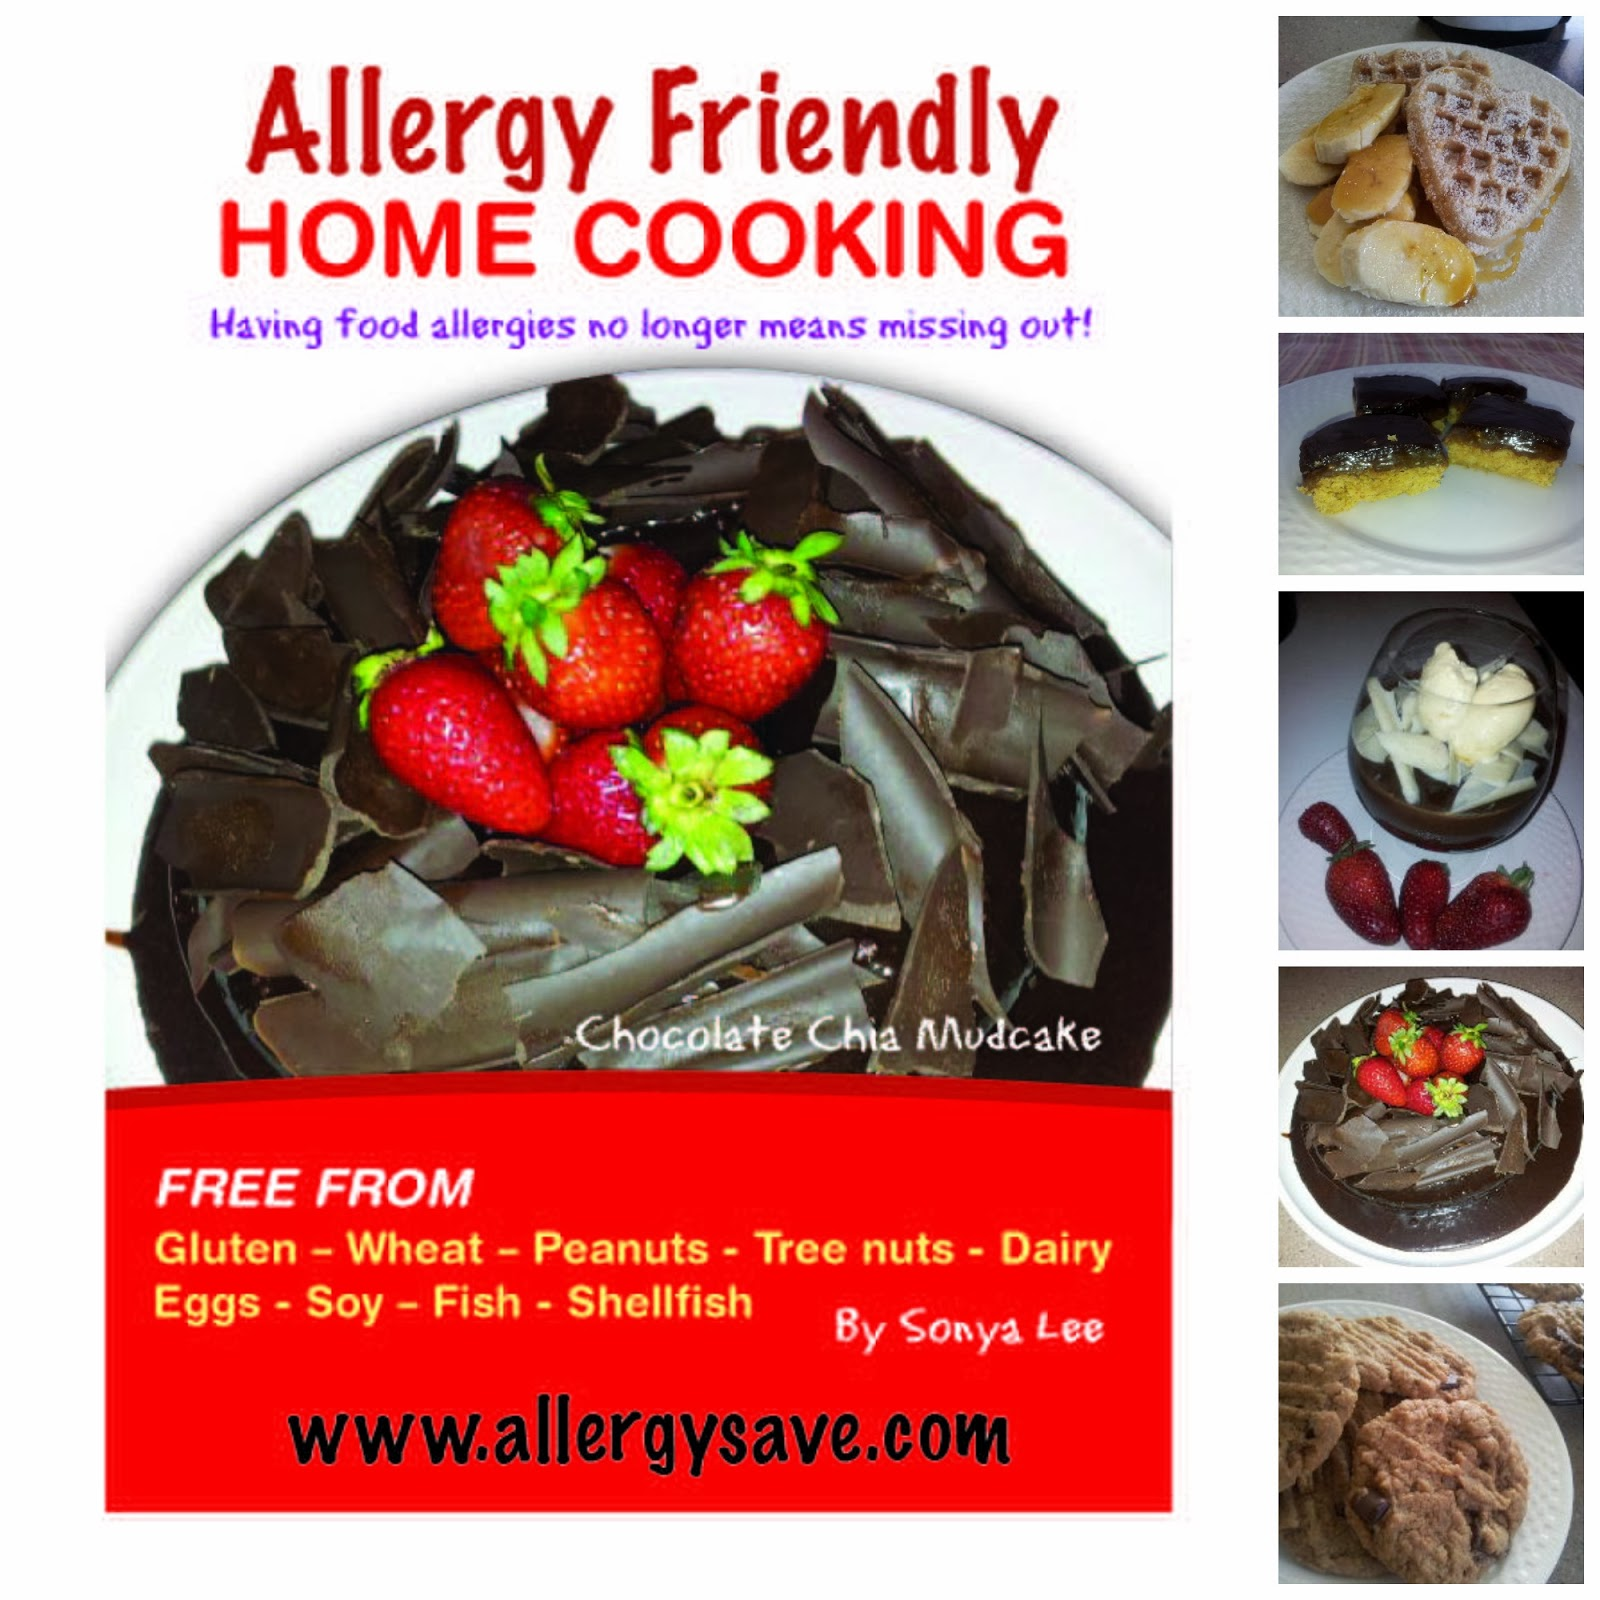 http://www.allergysave.com/recipes/allergy-friendly-home-cooking